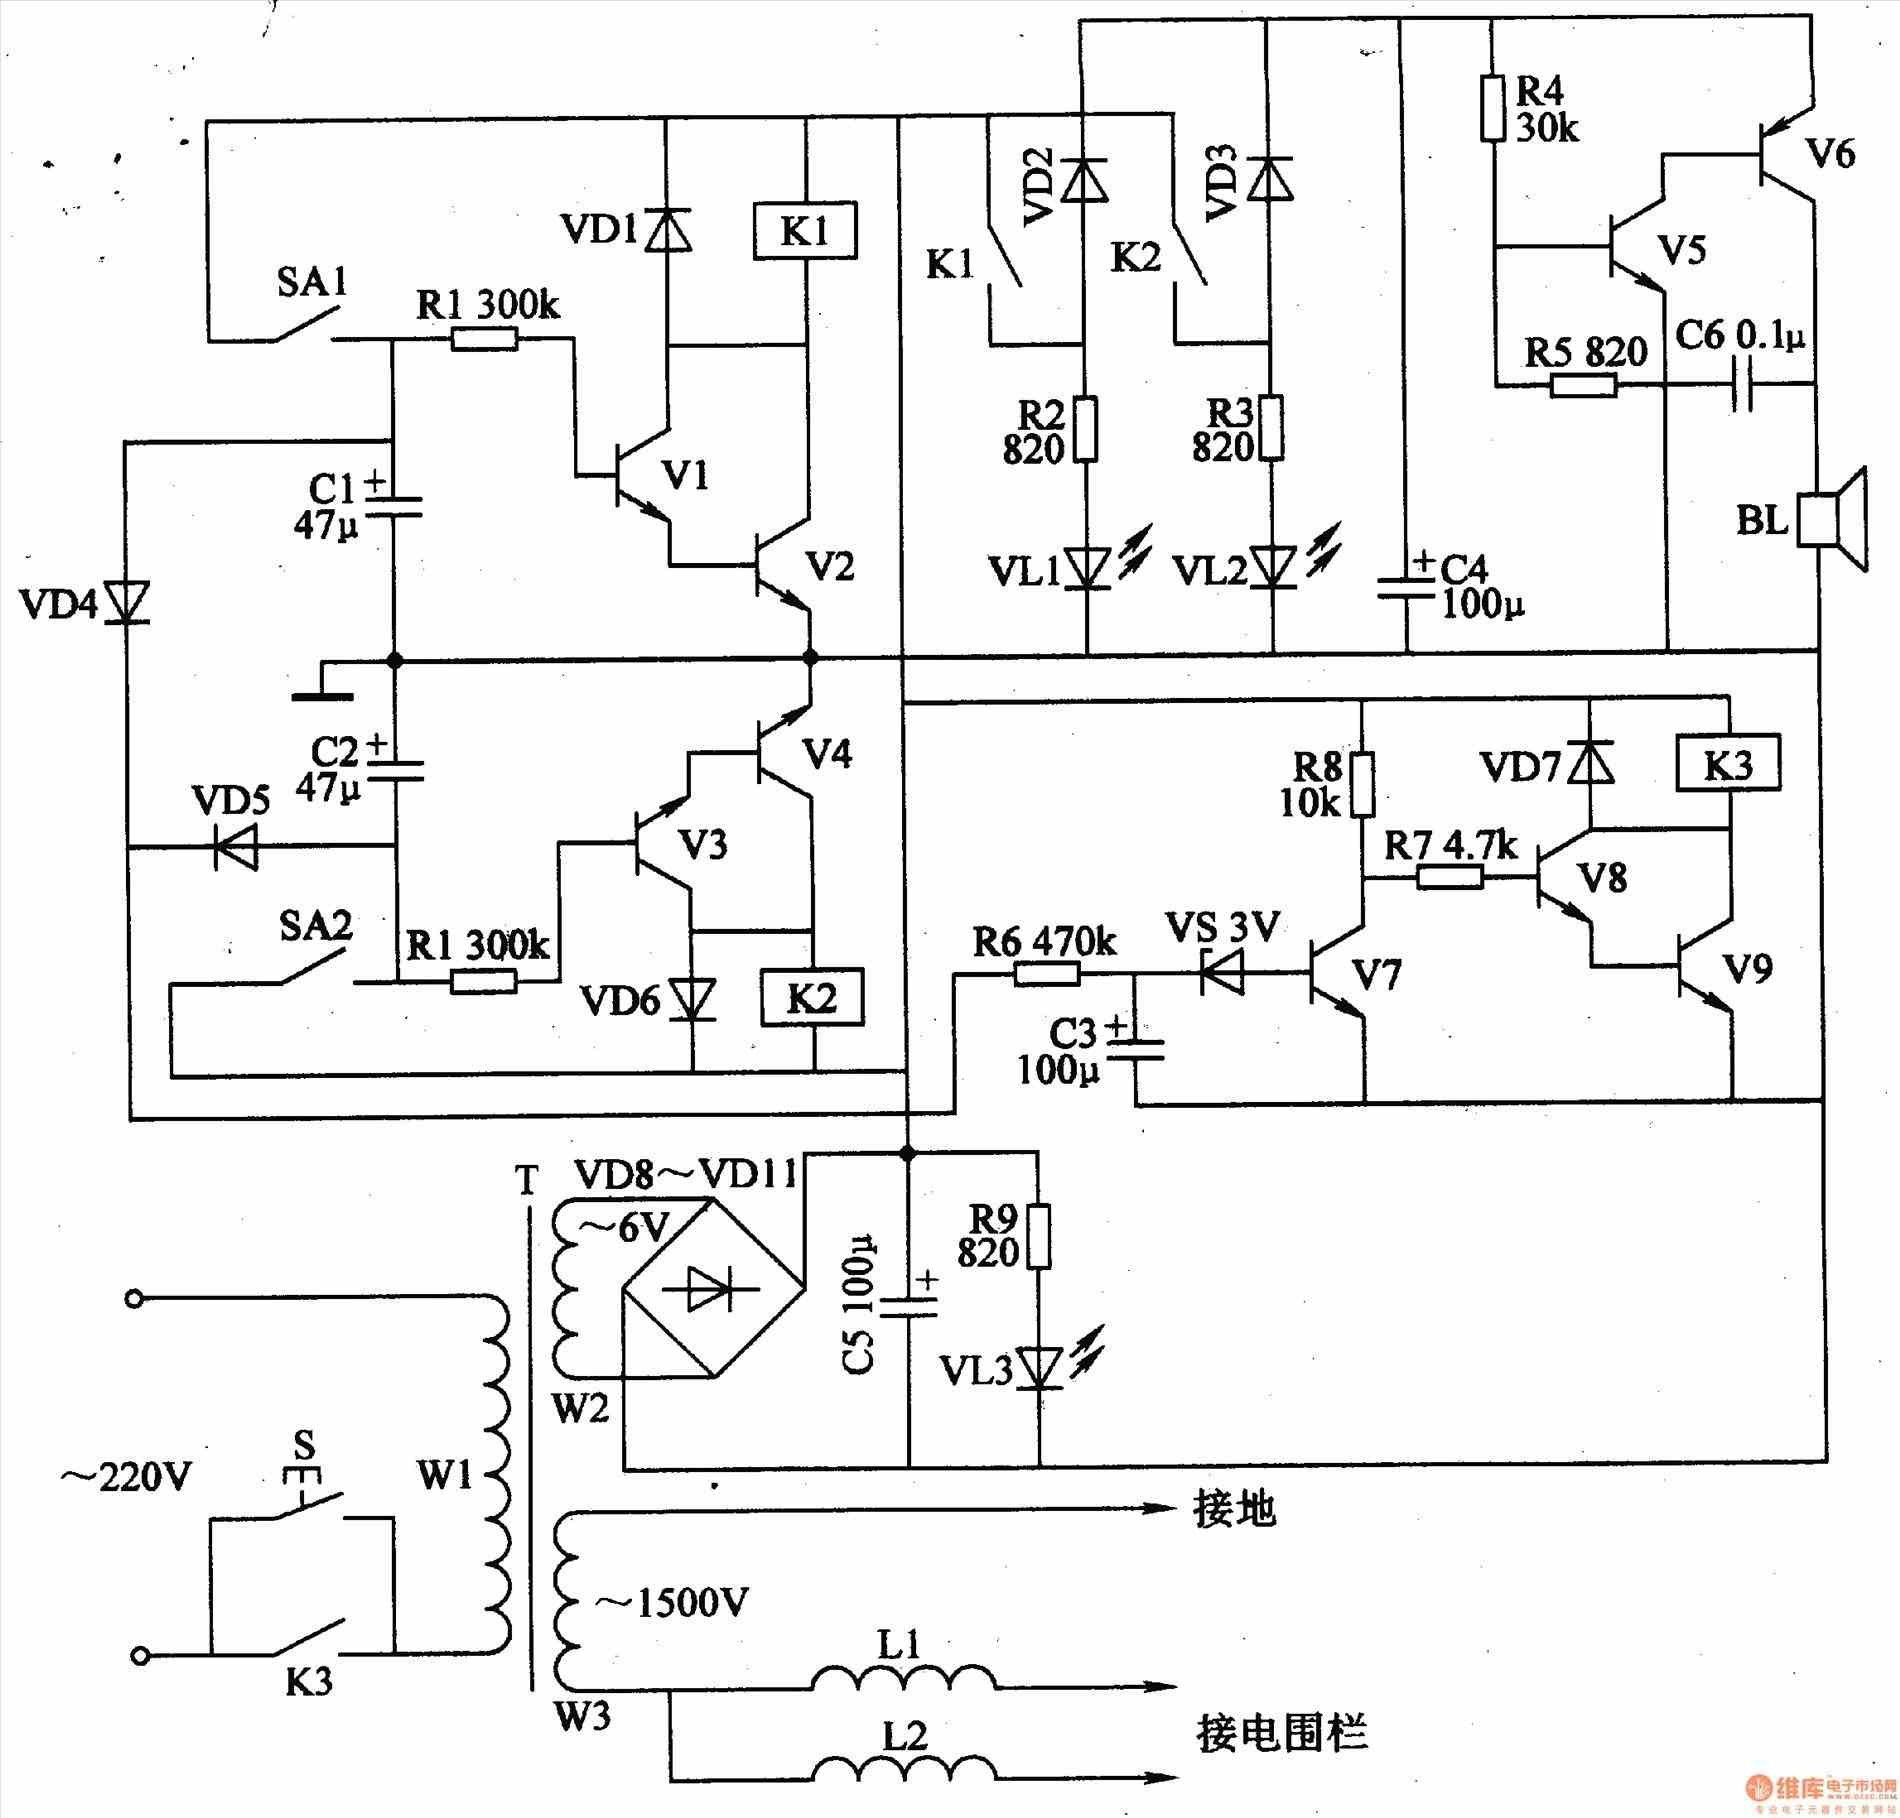 How to Wire An Electric Fence Diagram Lovely U Pocketmagic How to Wire Diagram Gooddyorg How